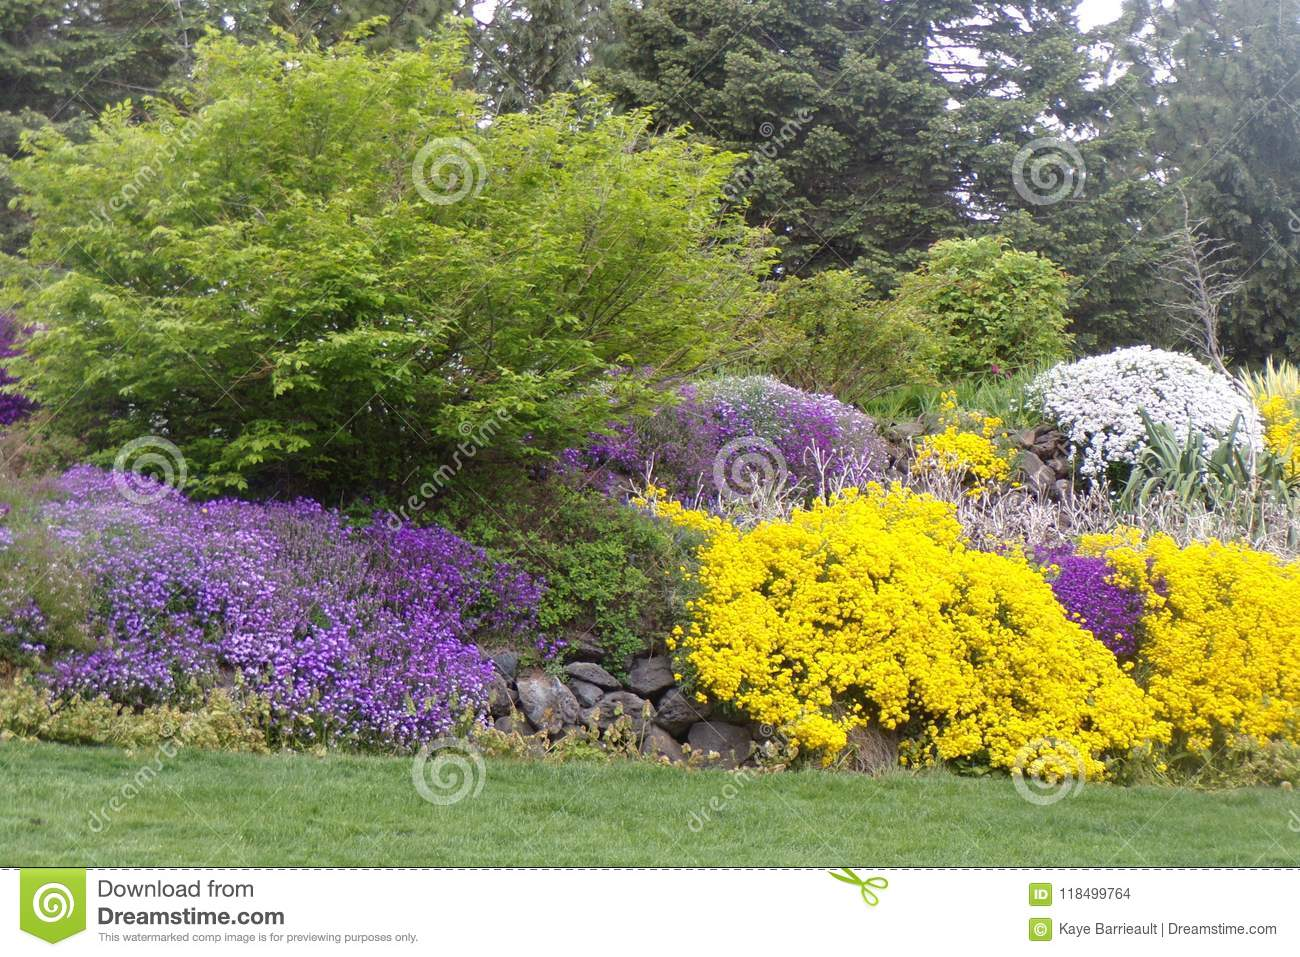 Lush Landscaping With Purple Yellow And White Flowers Stock Photo